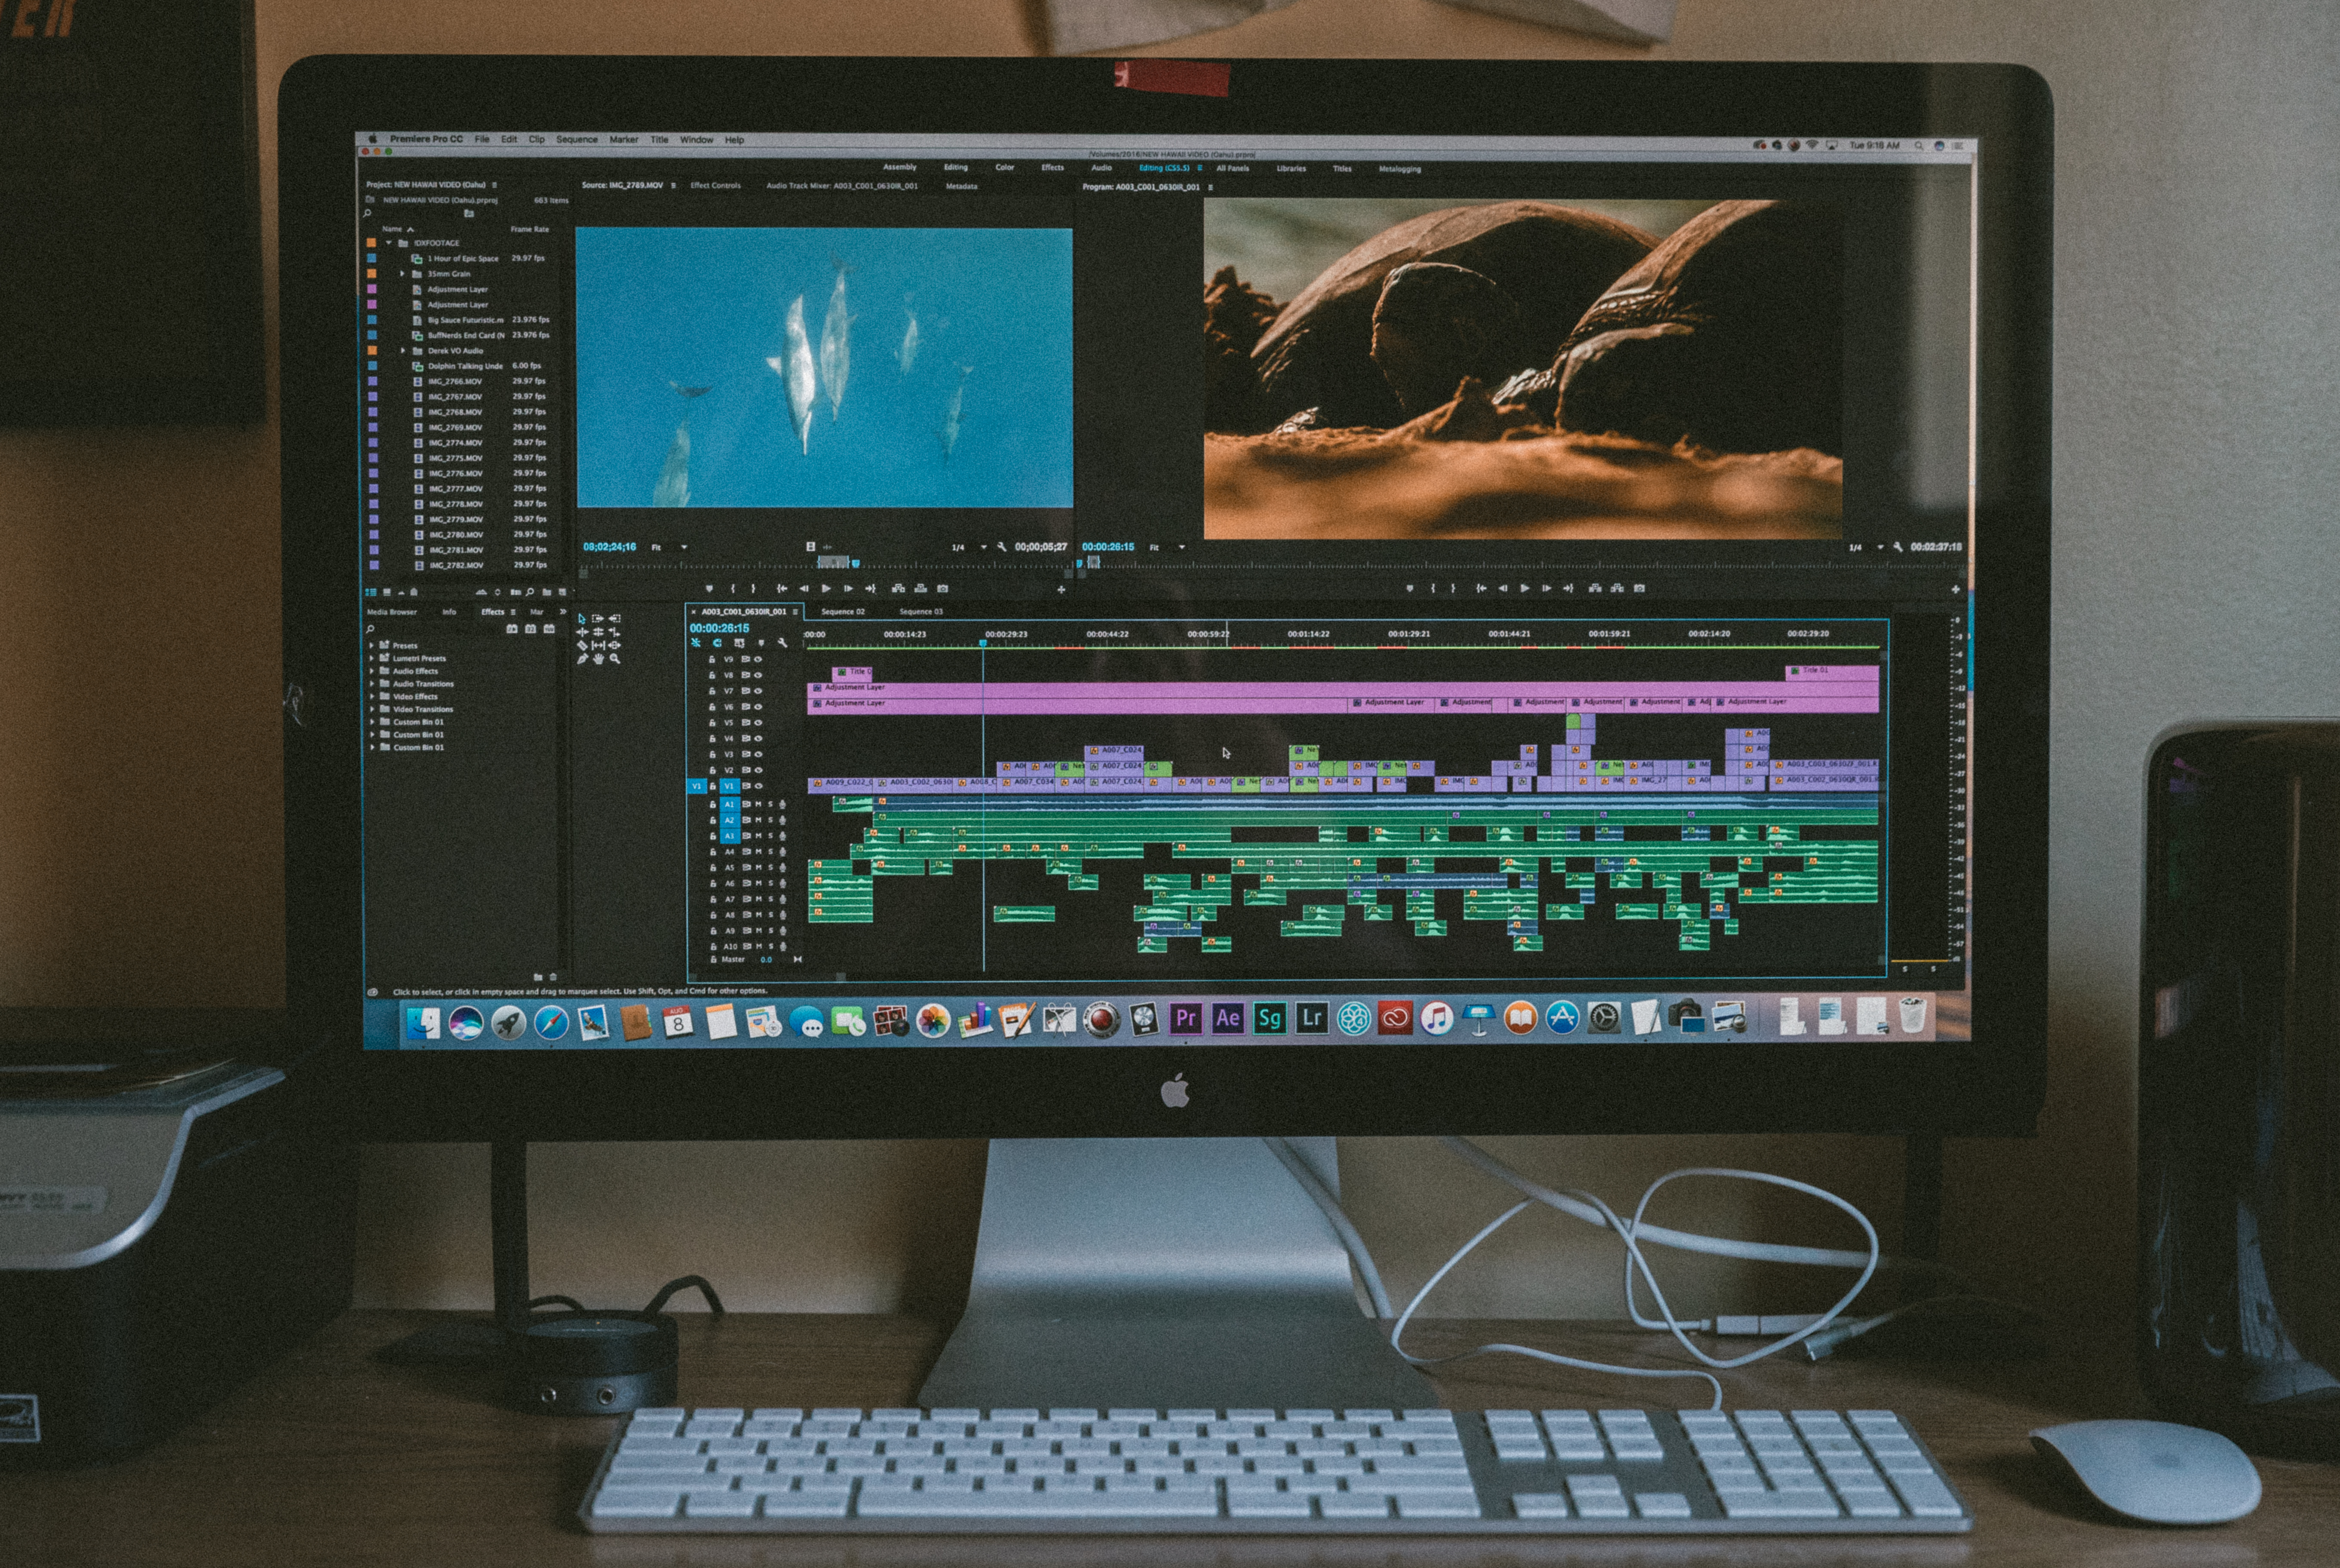 Photograph of a Mac computer running video editing software